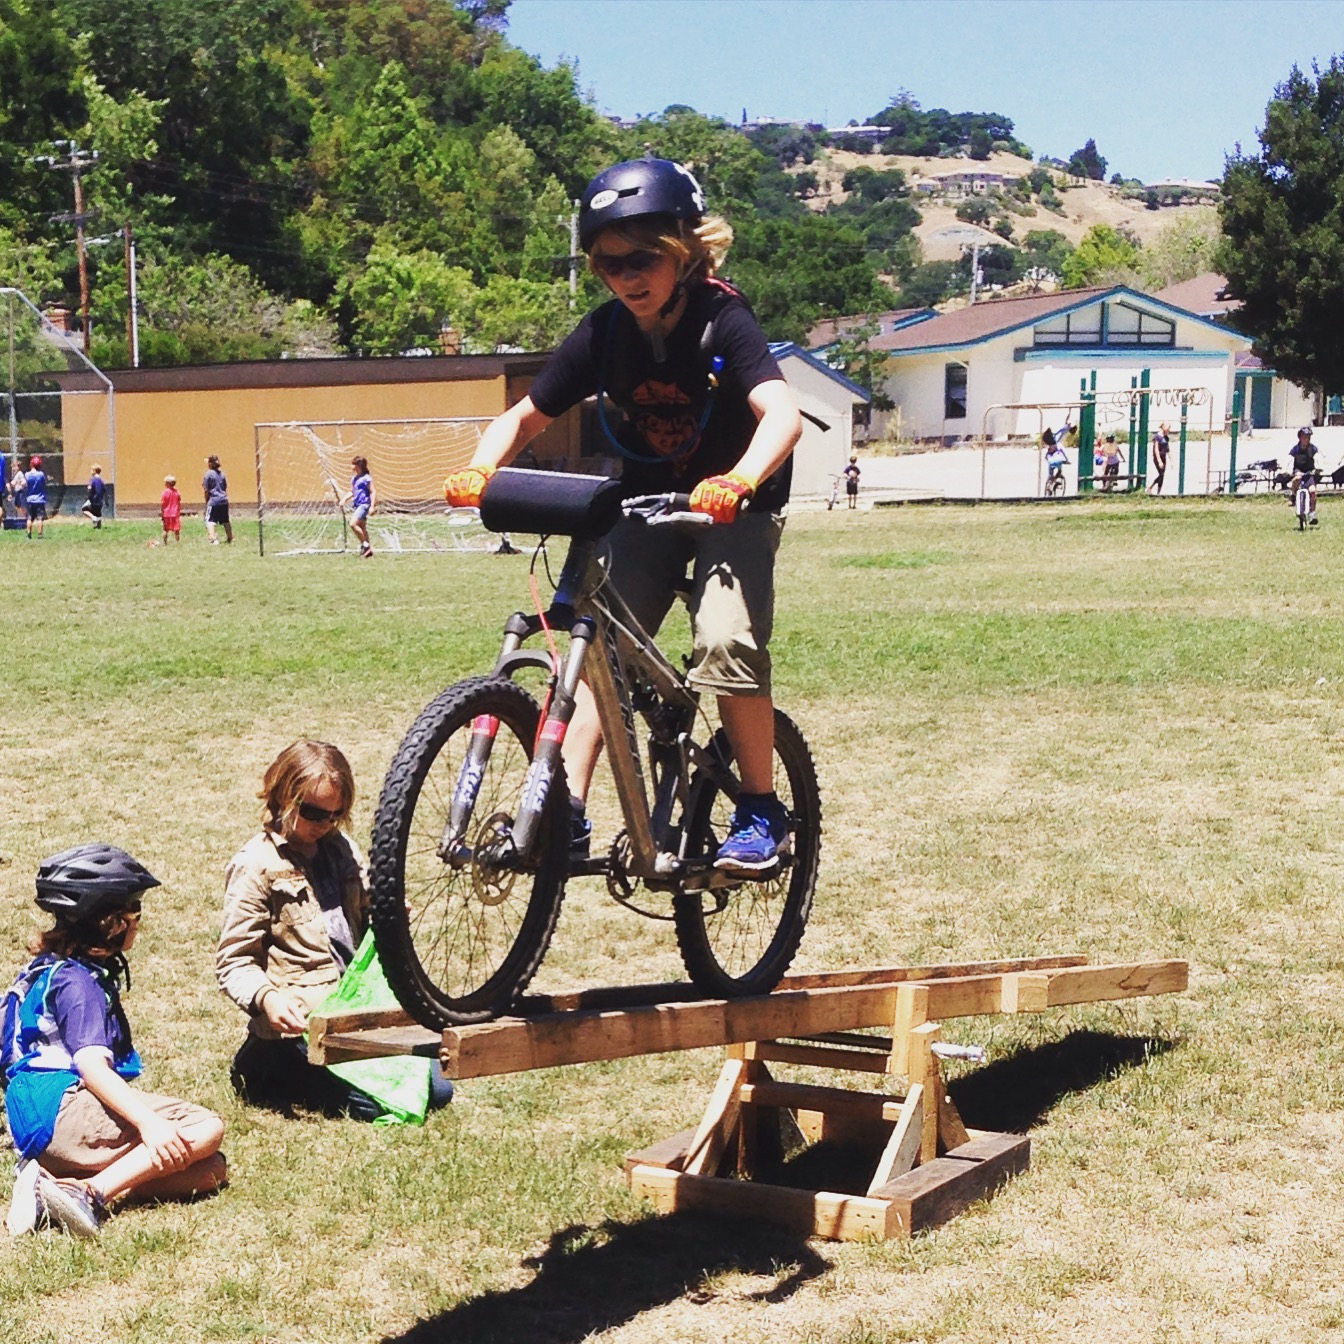 Improving balance and gettin' rad on the teeter totter.